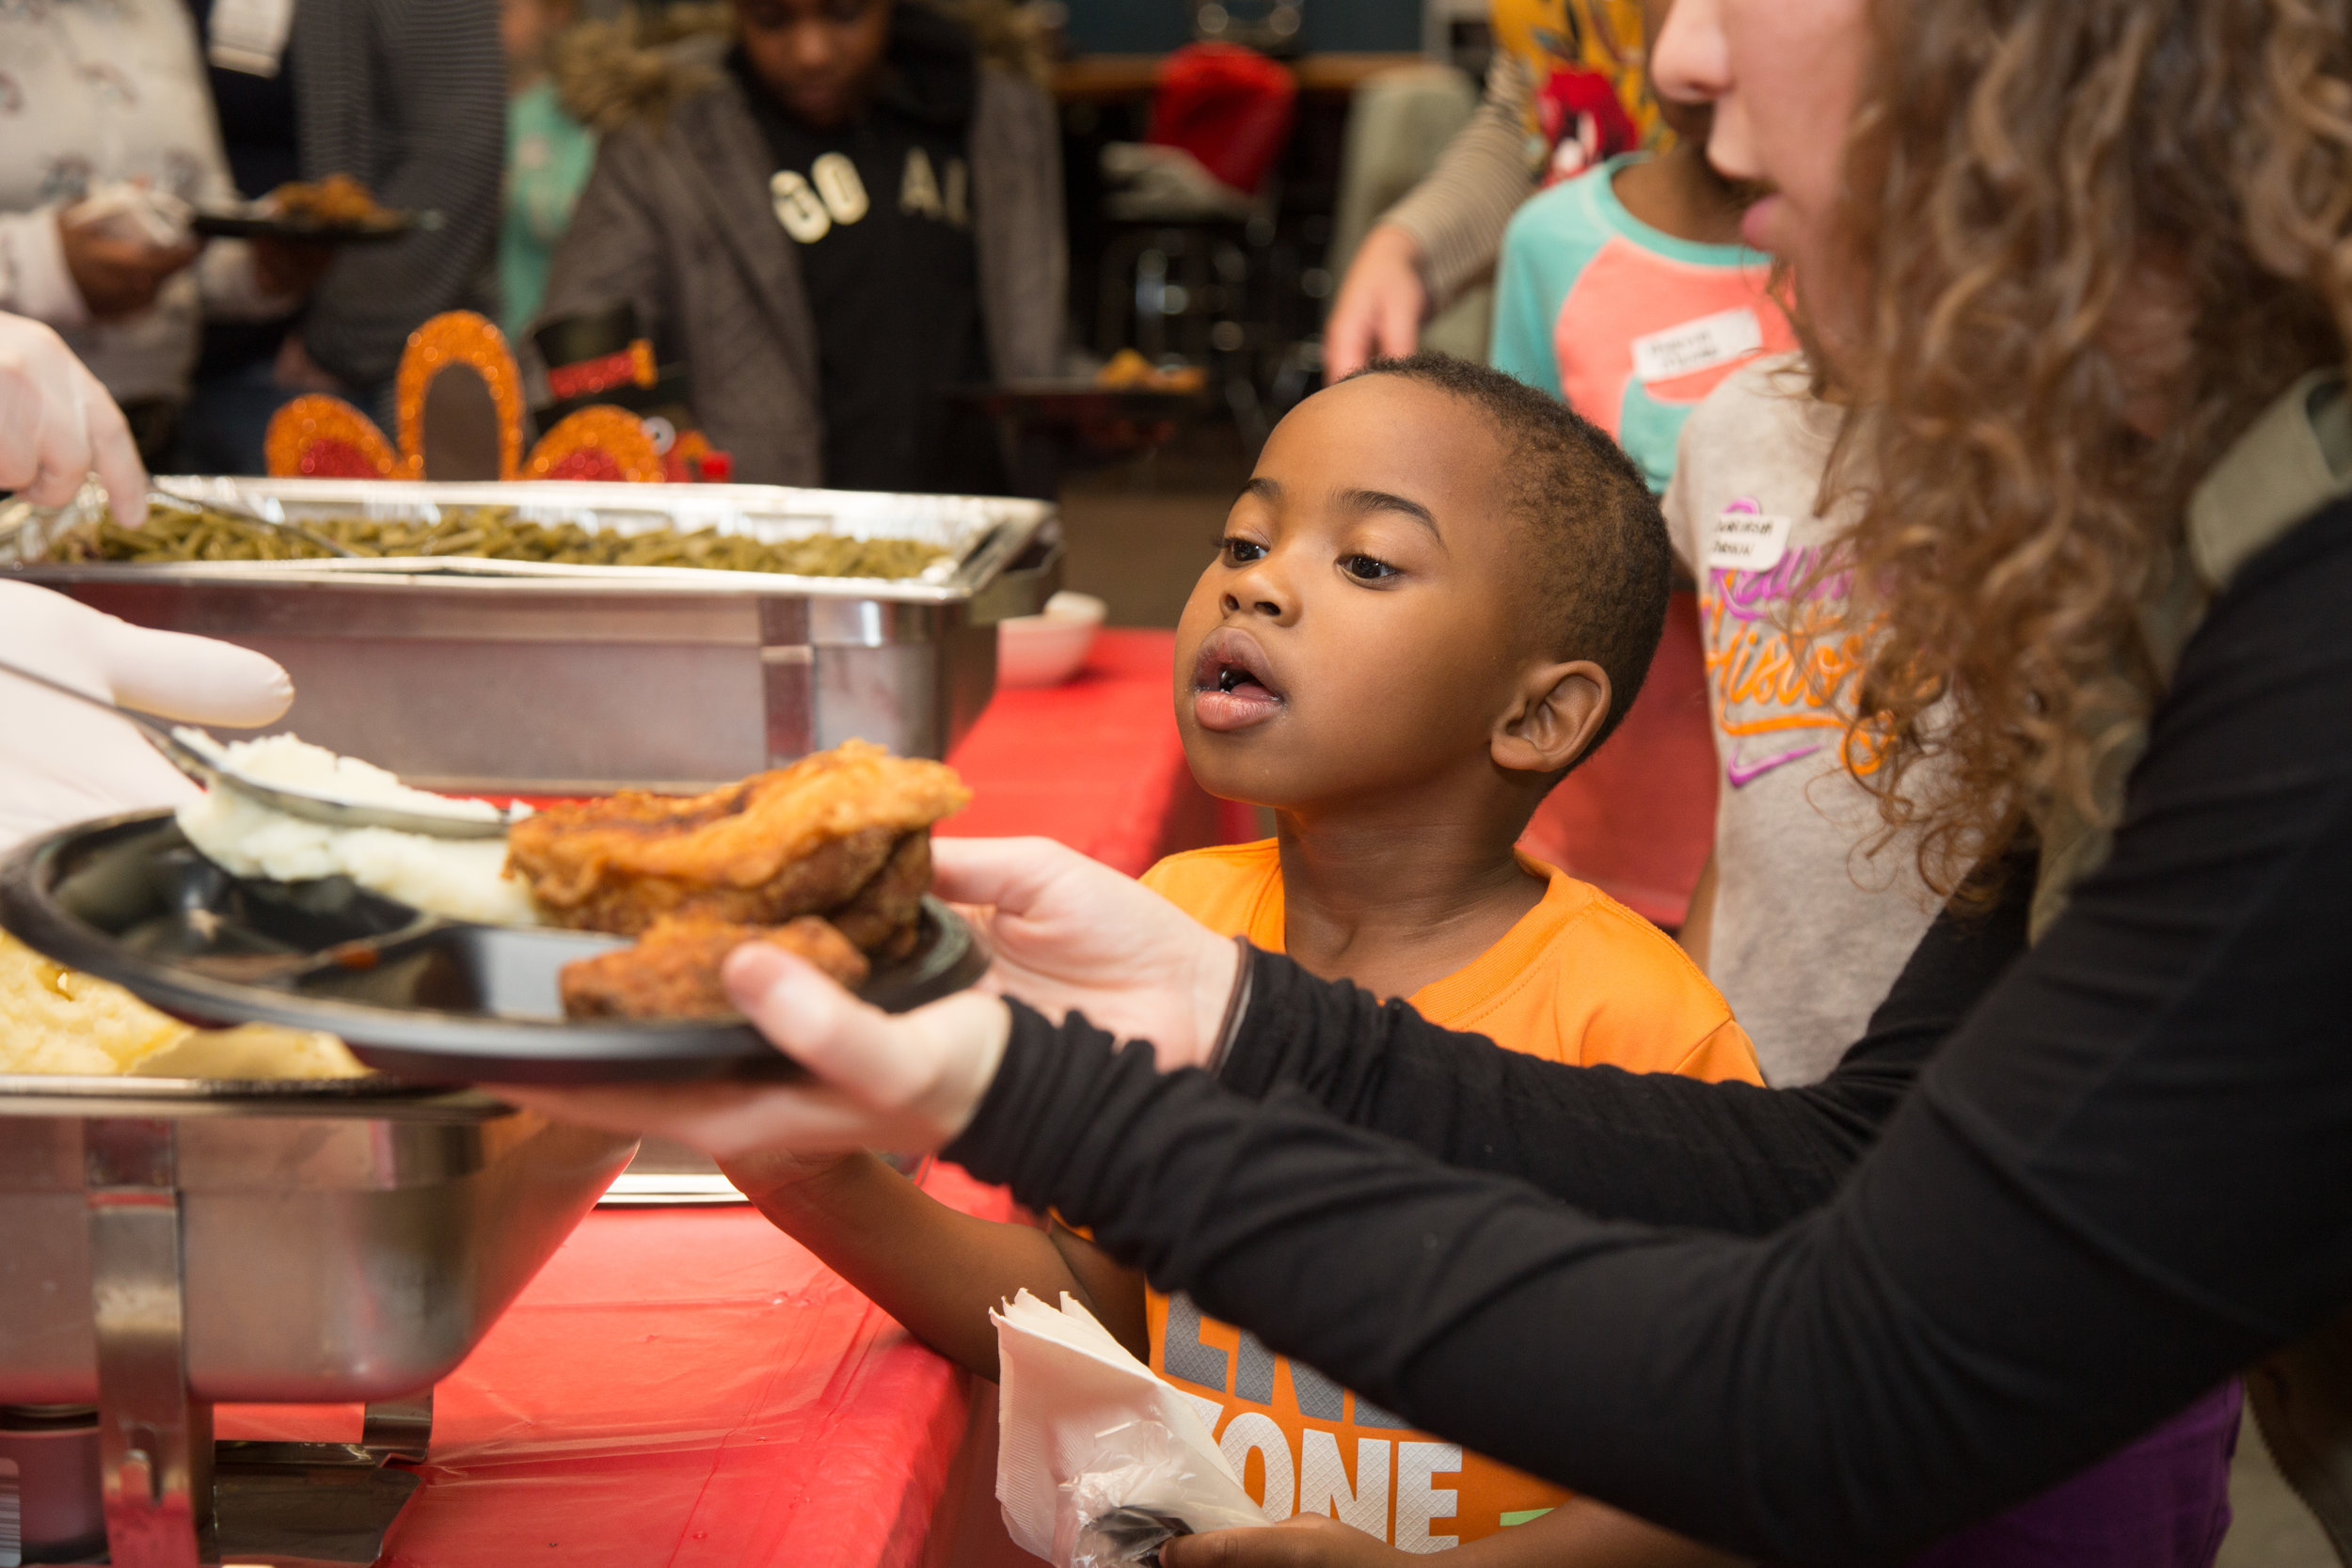 Thanksgiving - Every year The Love Fund partners with the Kansas City Chiefs and the Chiefs Ambassadors to celebrate Thanksgiving with 60+ youth who face homelessness, abandonment and abuse in their lives. The Love Fund provides children an evening of food and fun where kids can just be kids.